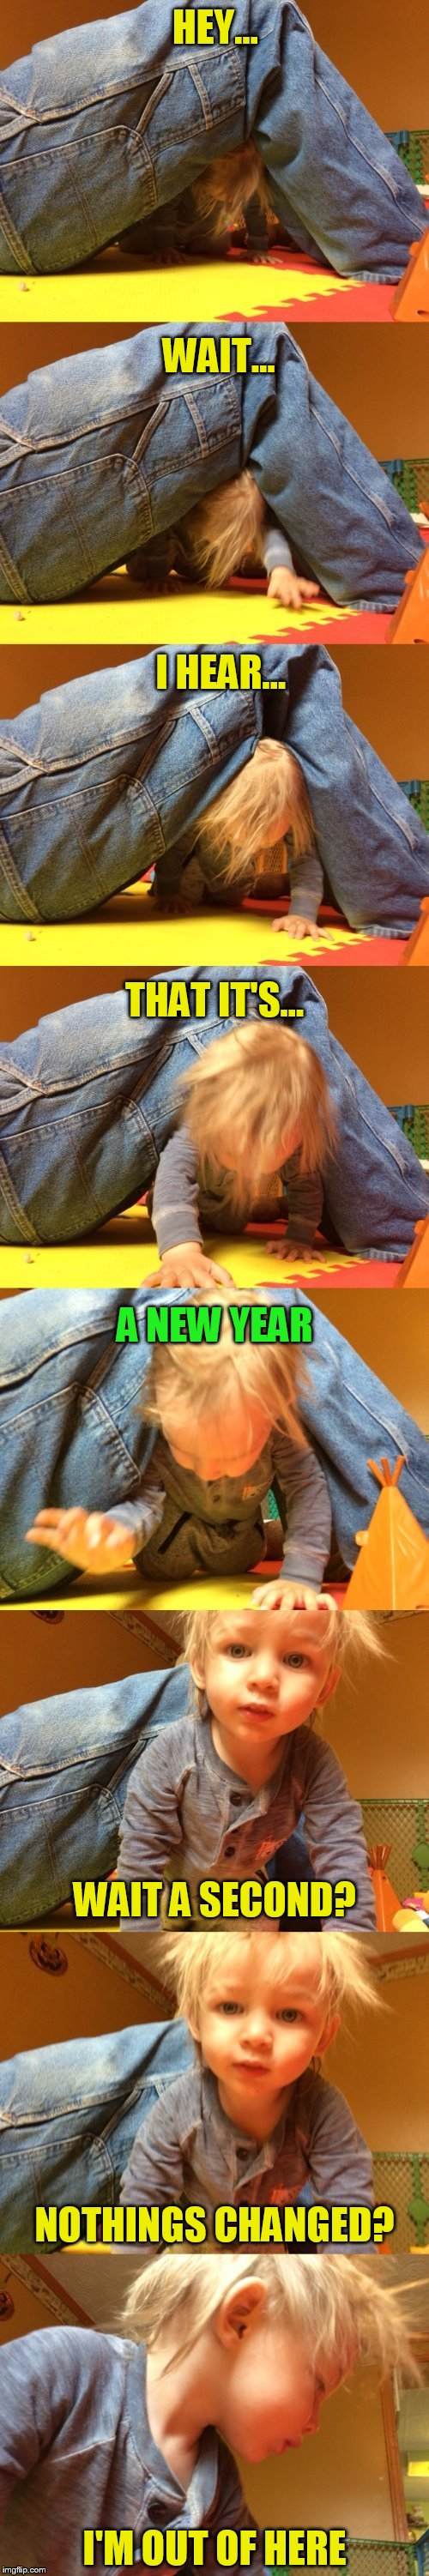 New Years Realizations (Happy New Year) | HEY... I'M OUT OF HERE WAIT... I HEAR... THAT IT'S... A NEW YEAR WAIT A SECOND? NOTHINGS CHANGED? | image tagged in memes,happy new year,new year,sudden realization,mini dash,happy memeing | made w/ Imgflip meme maker